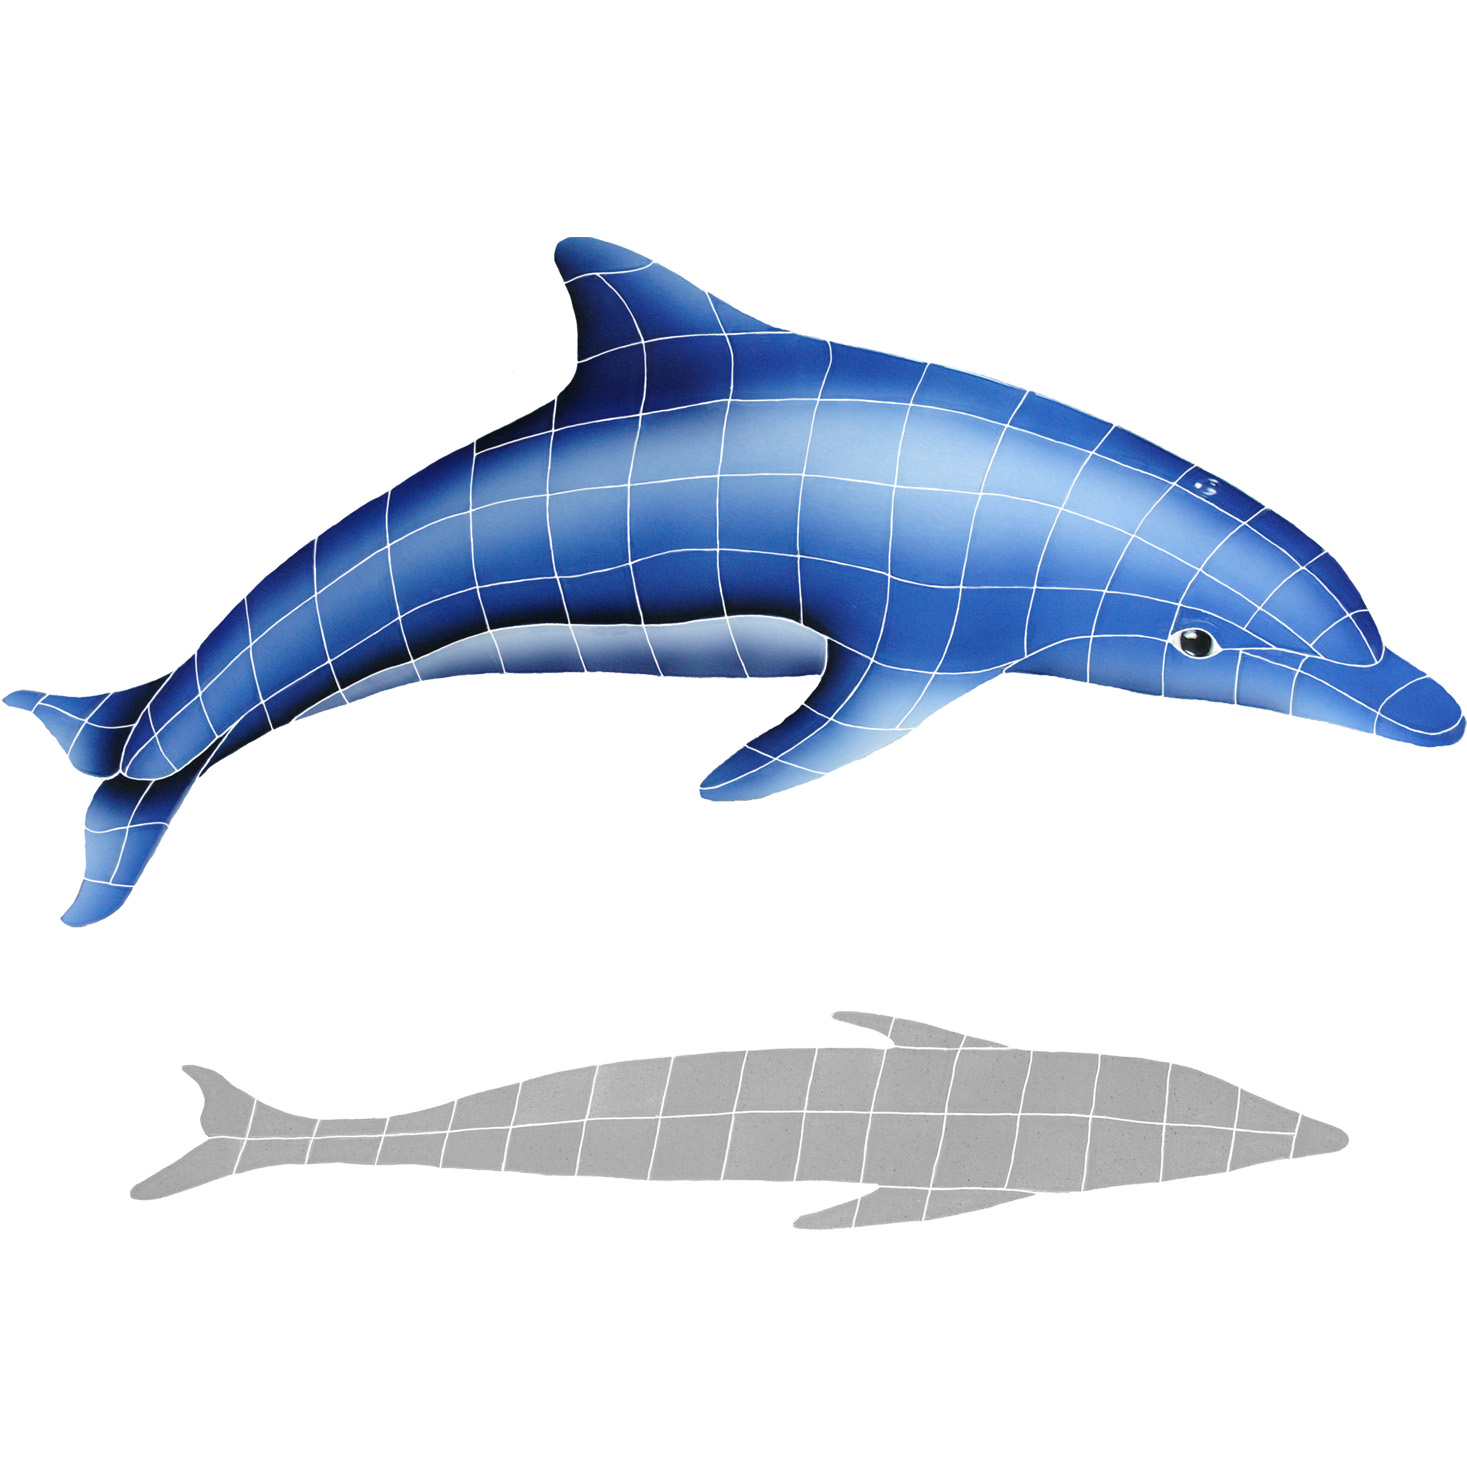 "Dolphin in the Sun with Shadow A Ceramic Mosaic Swimming Pool Mural 31"" x 42"", 1 piece"